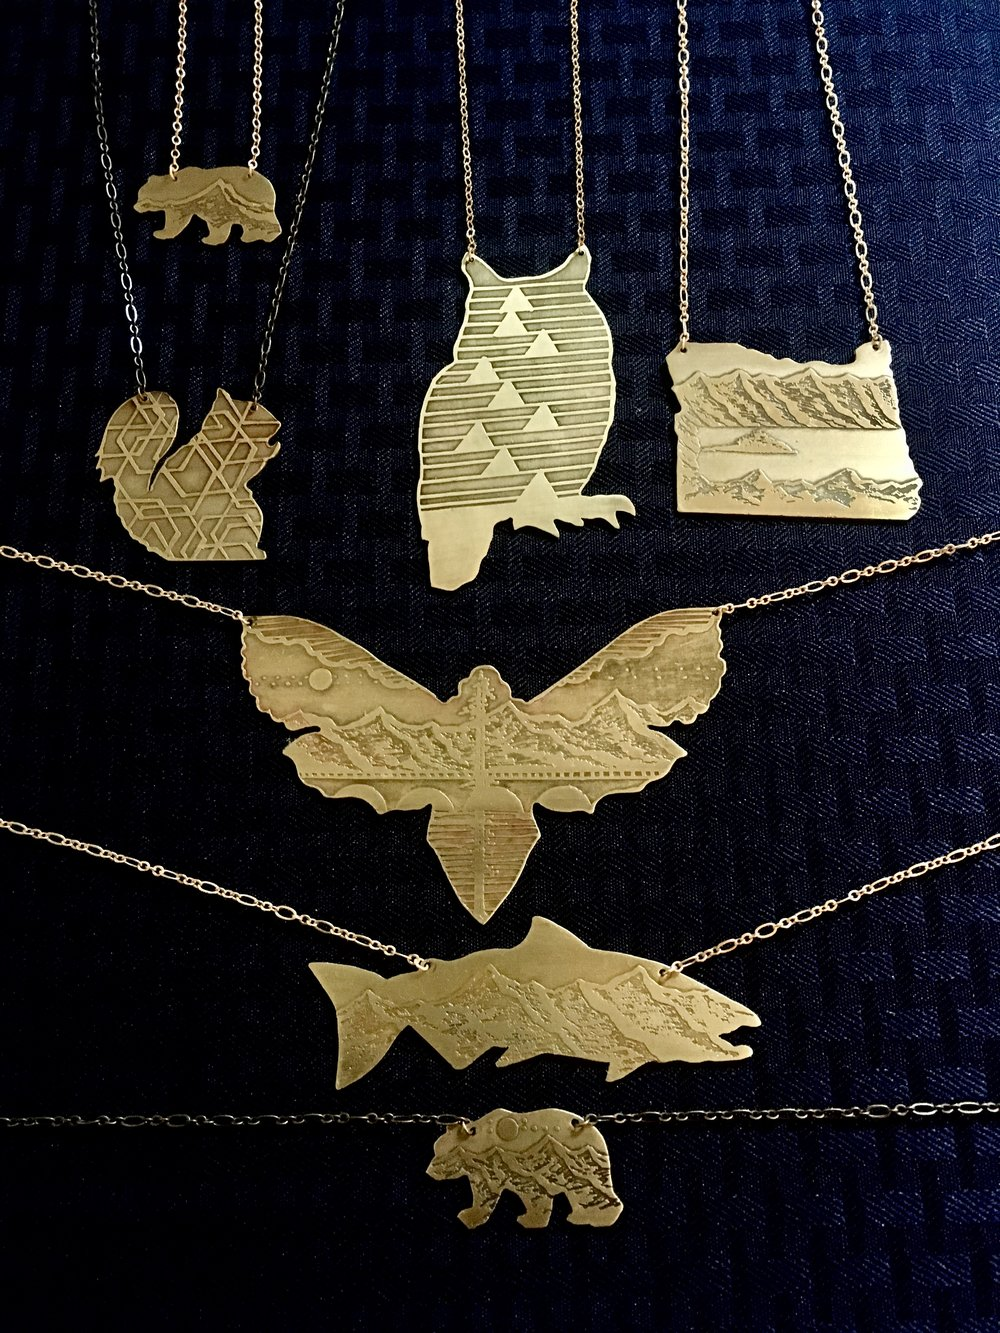 Handcrafted Etched Cutout Necklaces